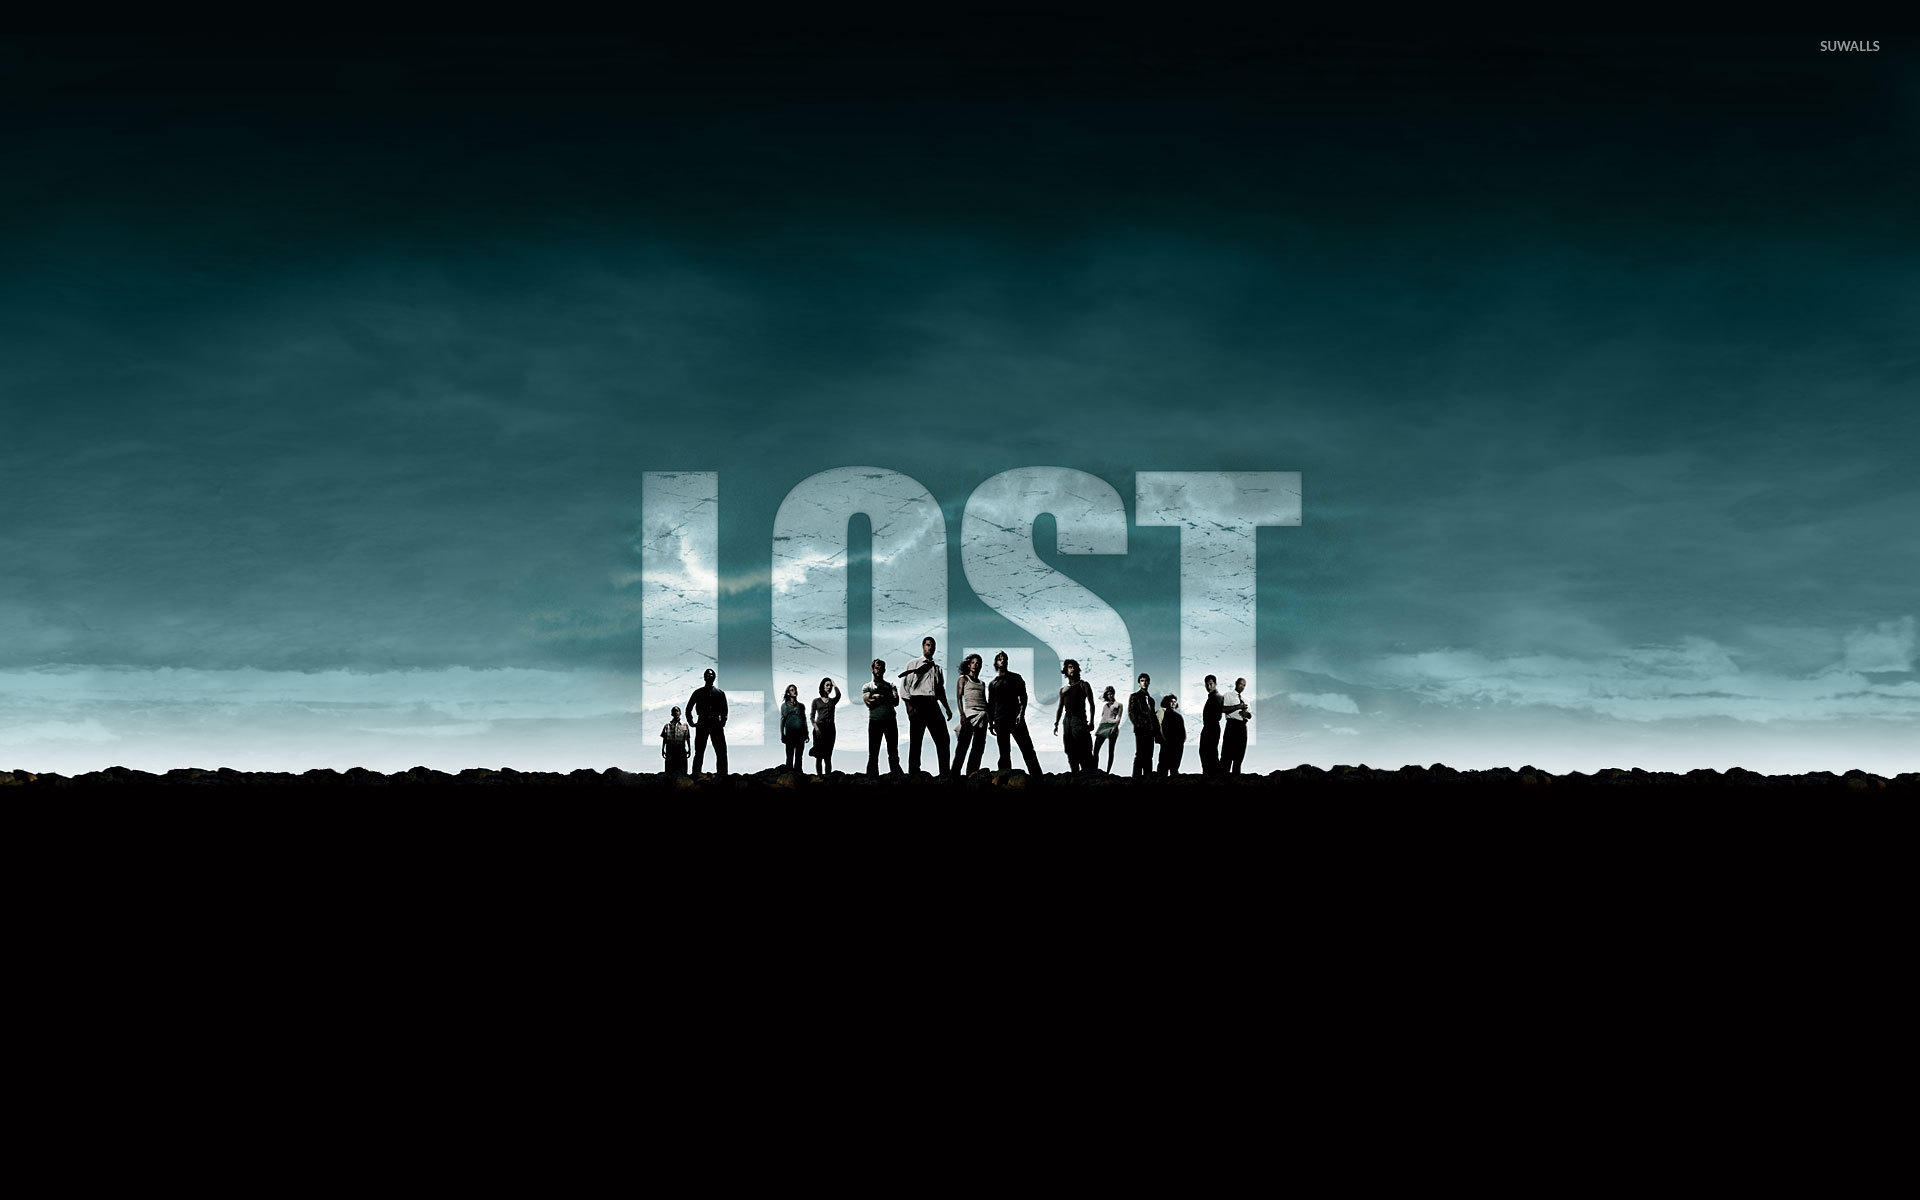 Lost Wallpapers and Background Images   stmednet 1920x1200